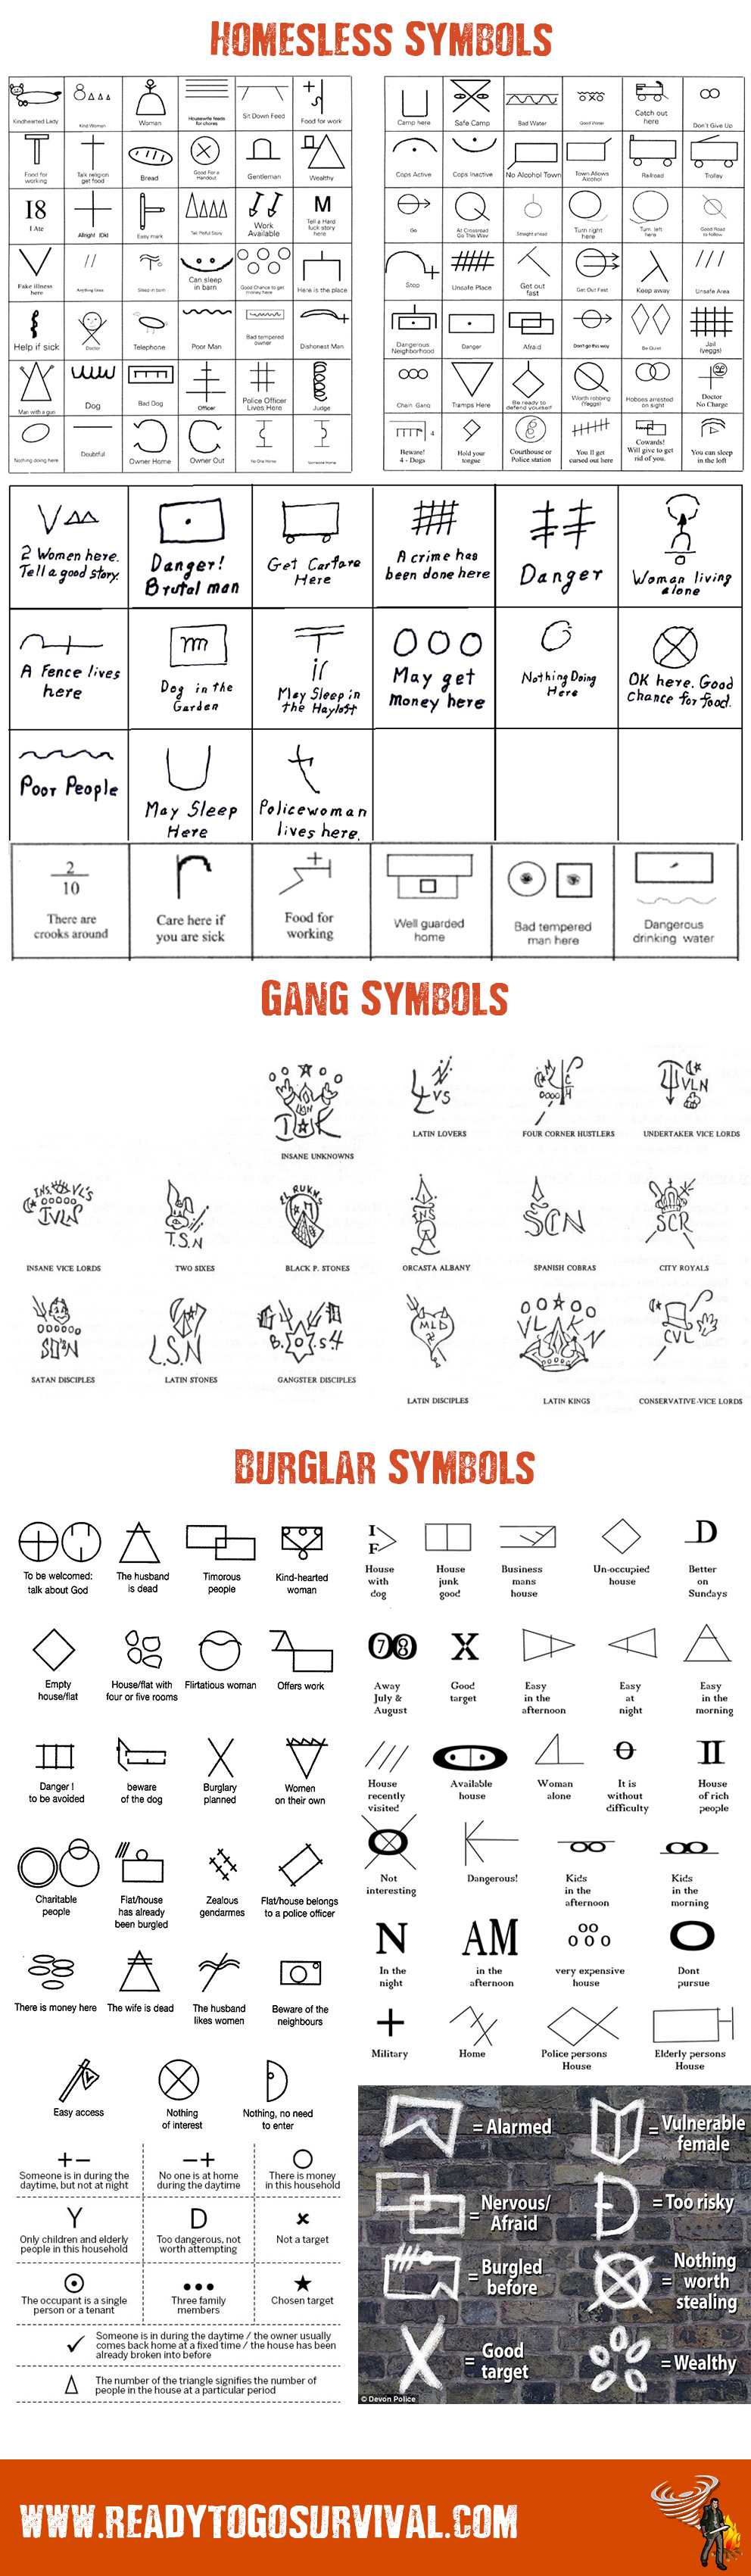 Common gang symbols image collections symbol and sign ideas 7 ninja like diy home security tricks to protect from unwanted guests infographic for diy home biocorpaavc